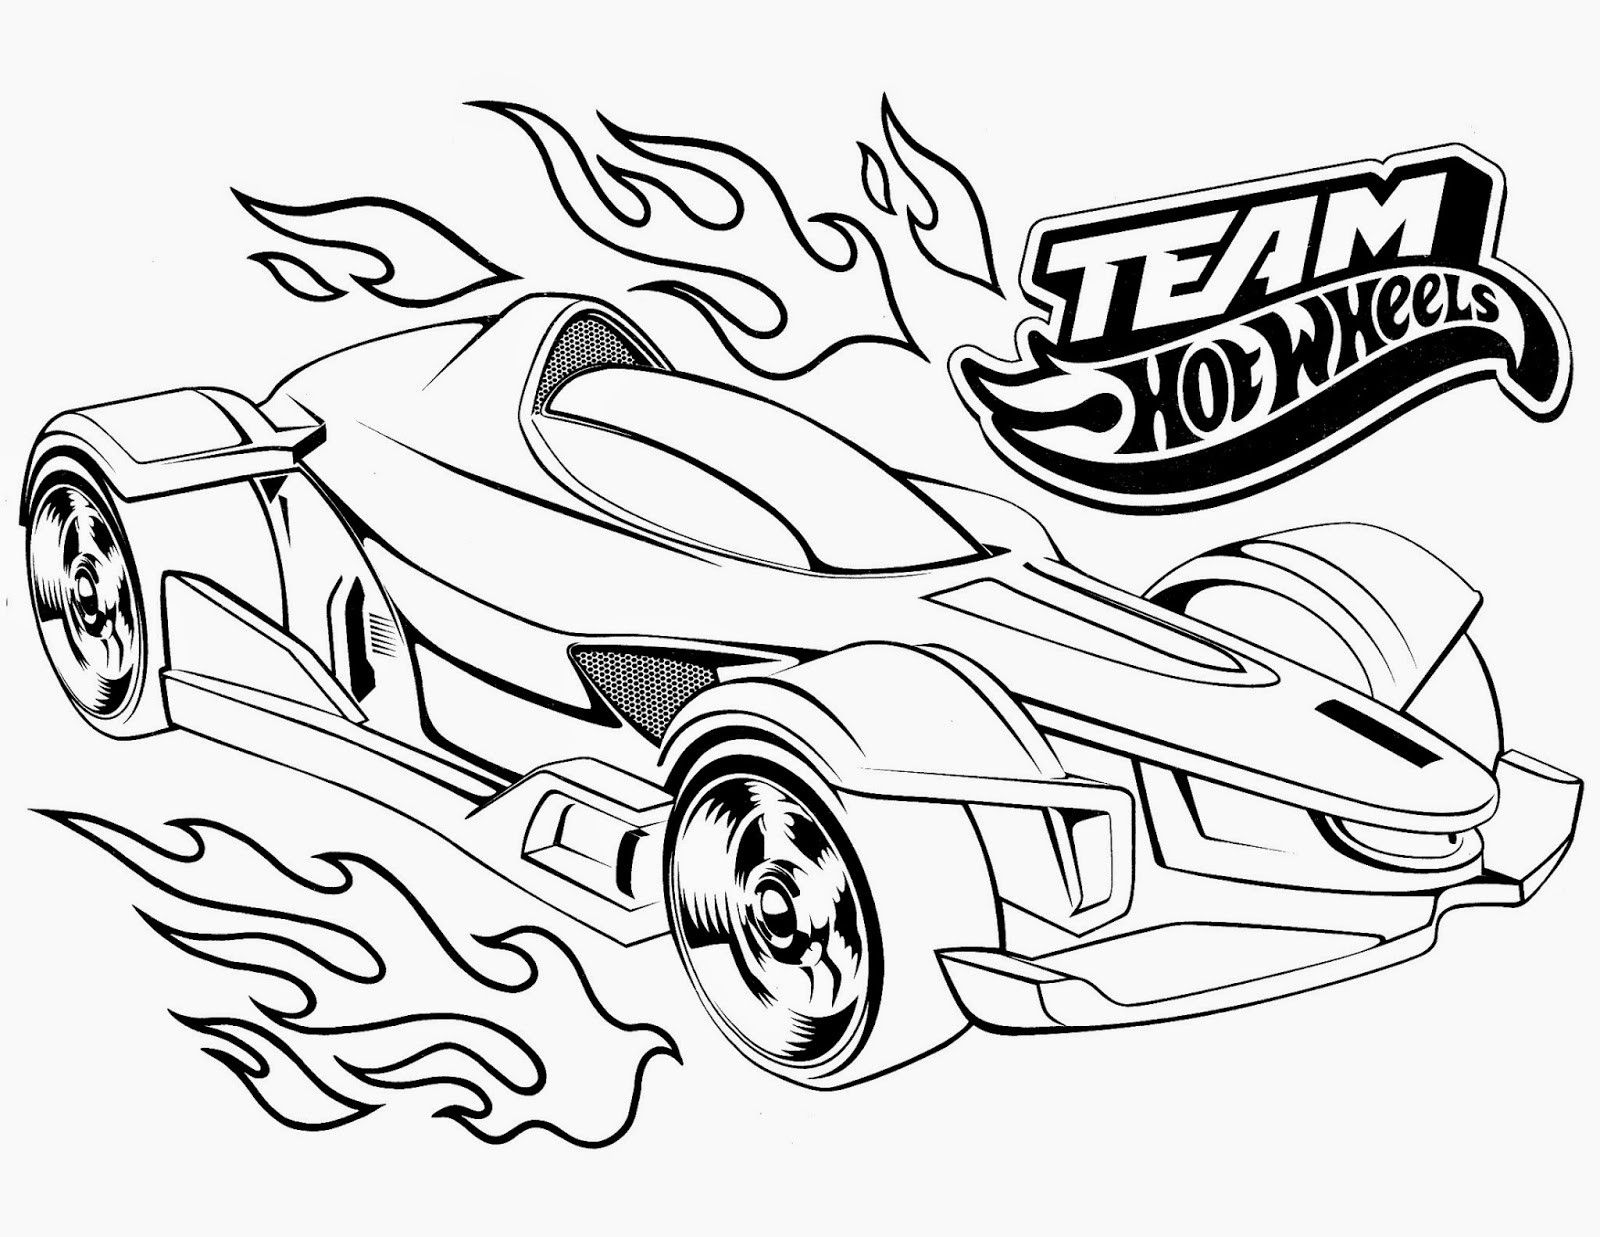 Hot Wheels Coloring Pages Set 5 In 2020 Cars Coloring Pages Race Car Coloring Pages Truck Coloring Pages